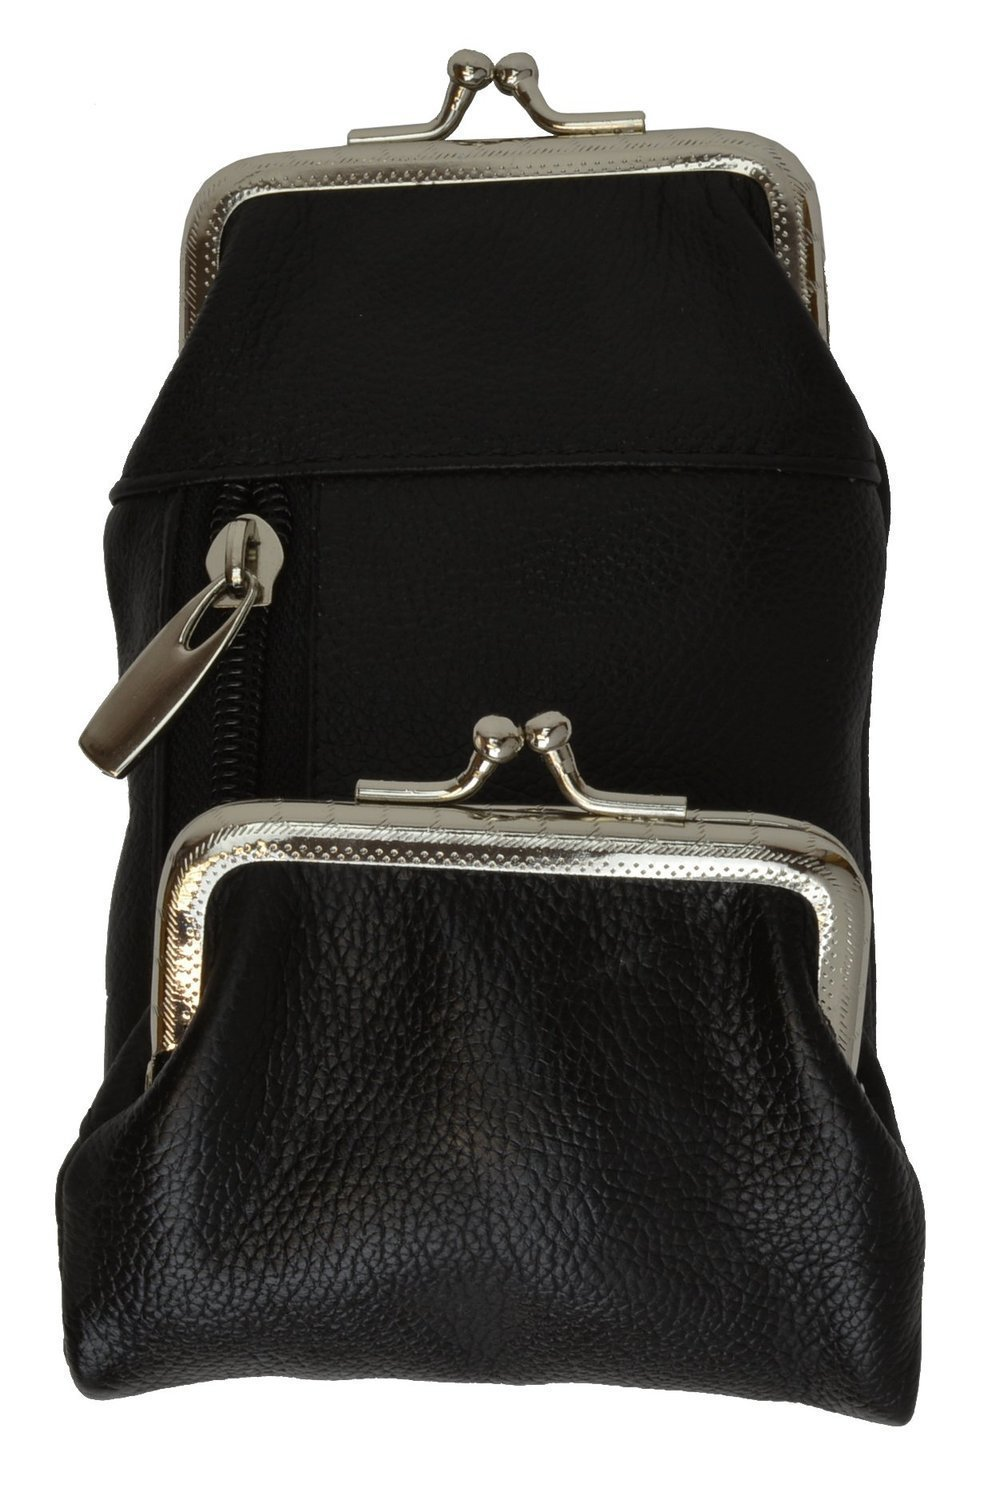 Womens Leather Cigarette and Lighter Case with Twist Clasp in Choice of Colors (Black)